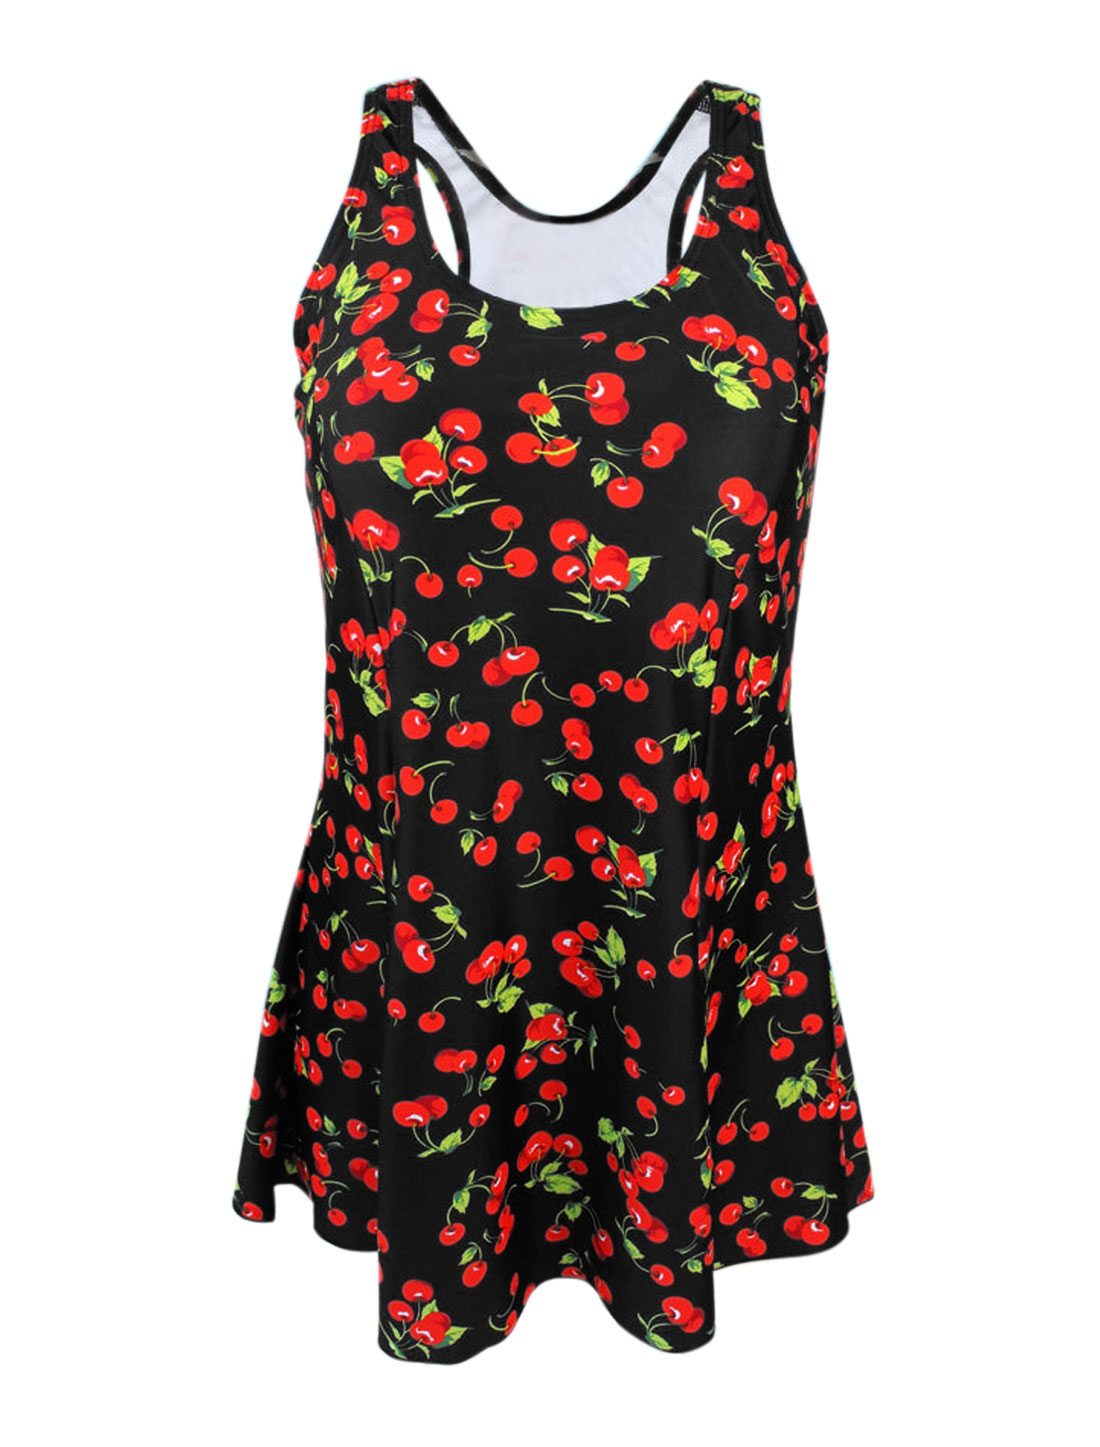 Women Vintage One Piece Cherry Slim Bathing Suit Swimsuit Swimdress US 12 Cover Up